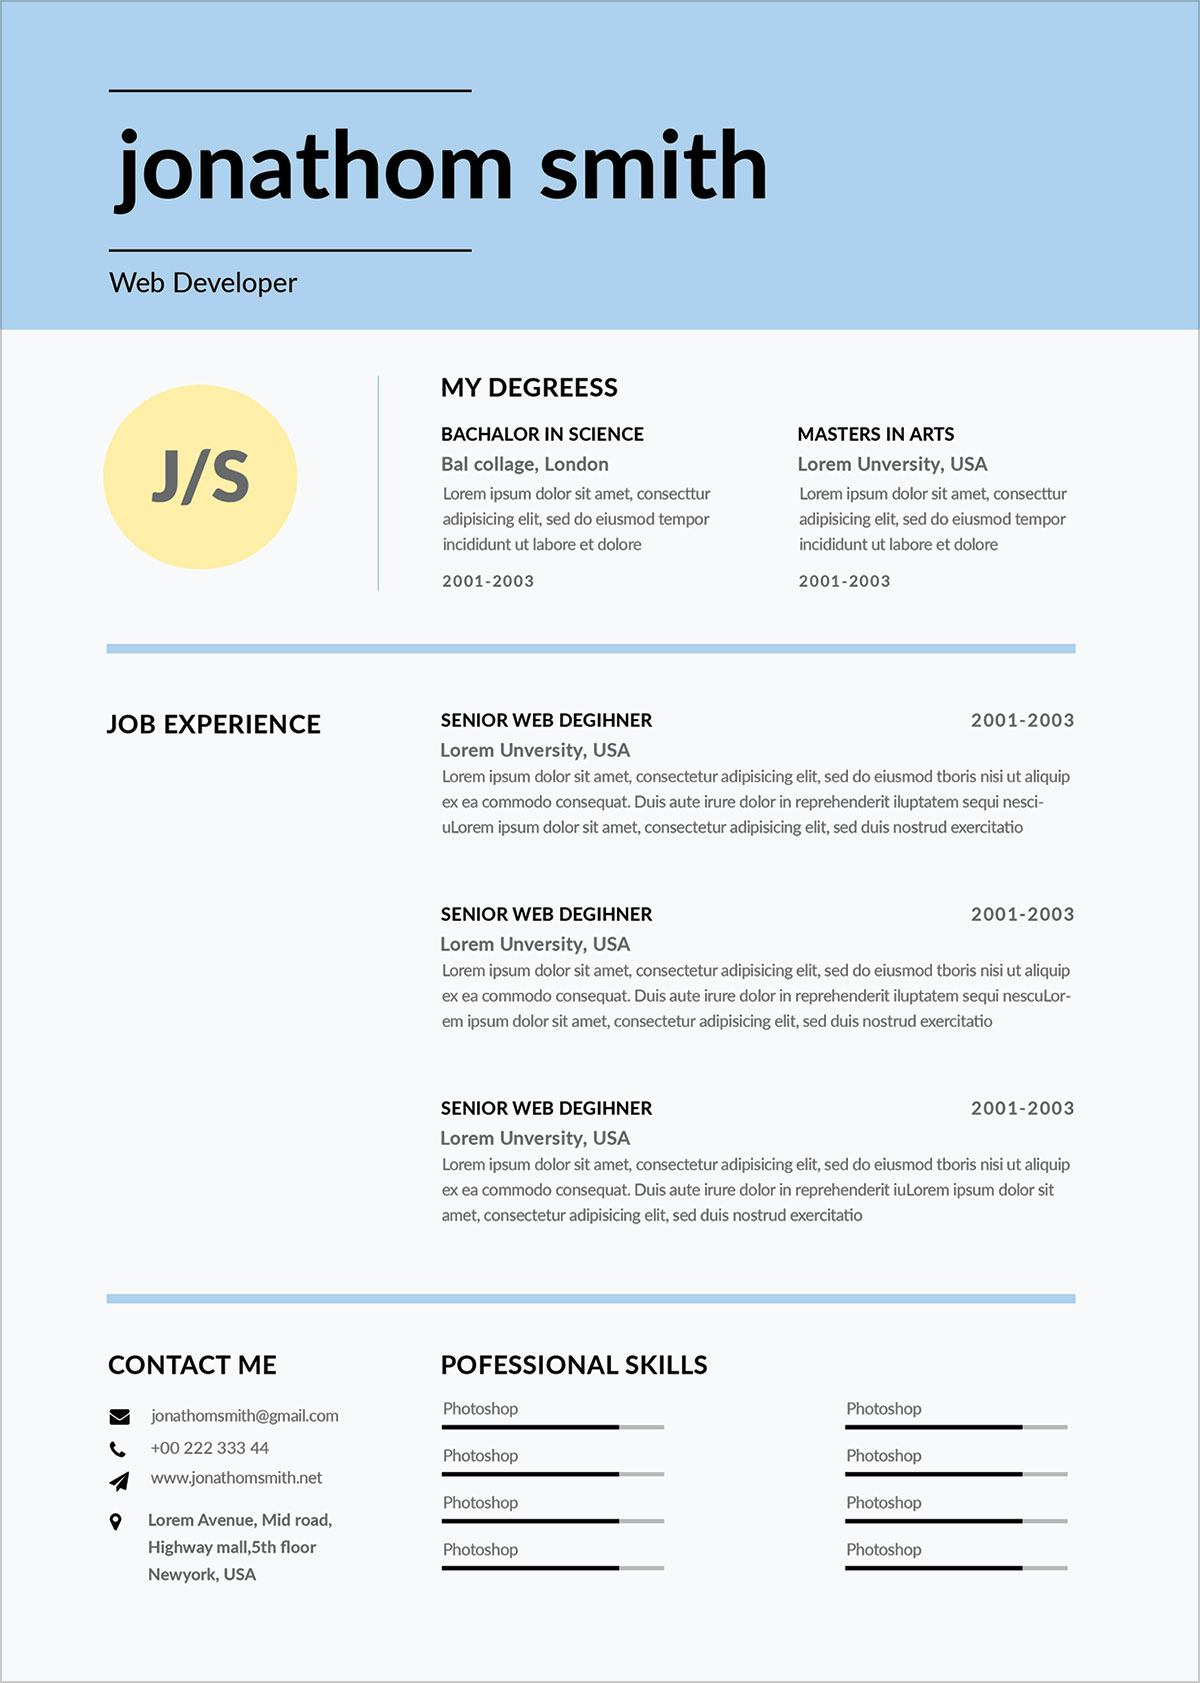 Free-Simple-Resume-Template-For-Web-Developer-in-PSD-Format-(4)